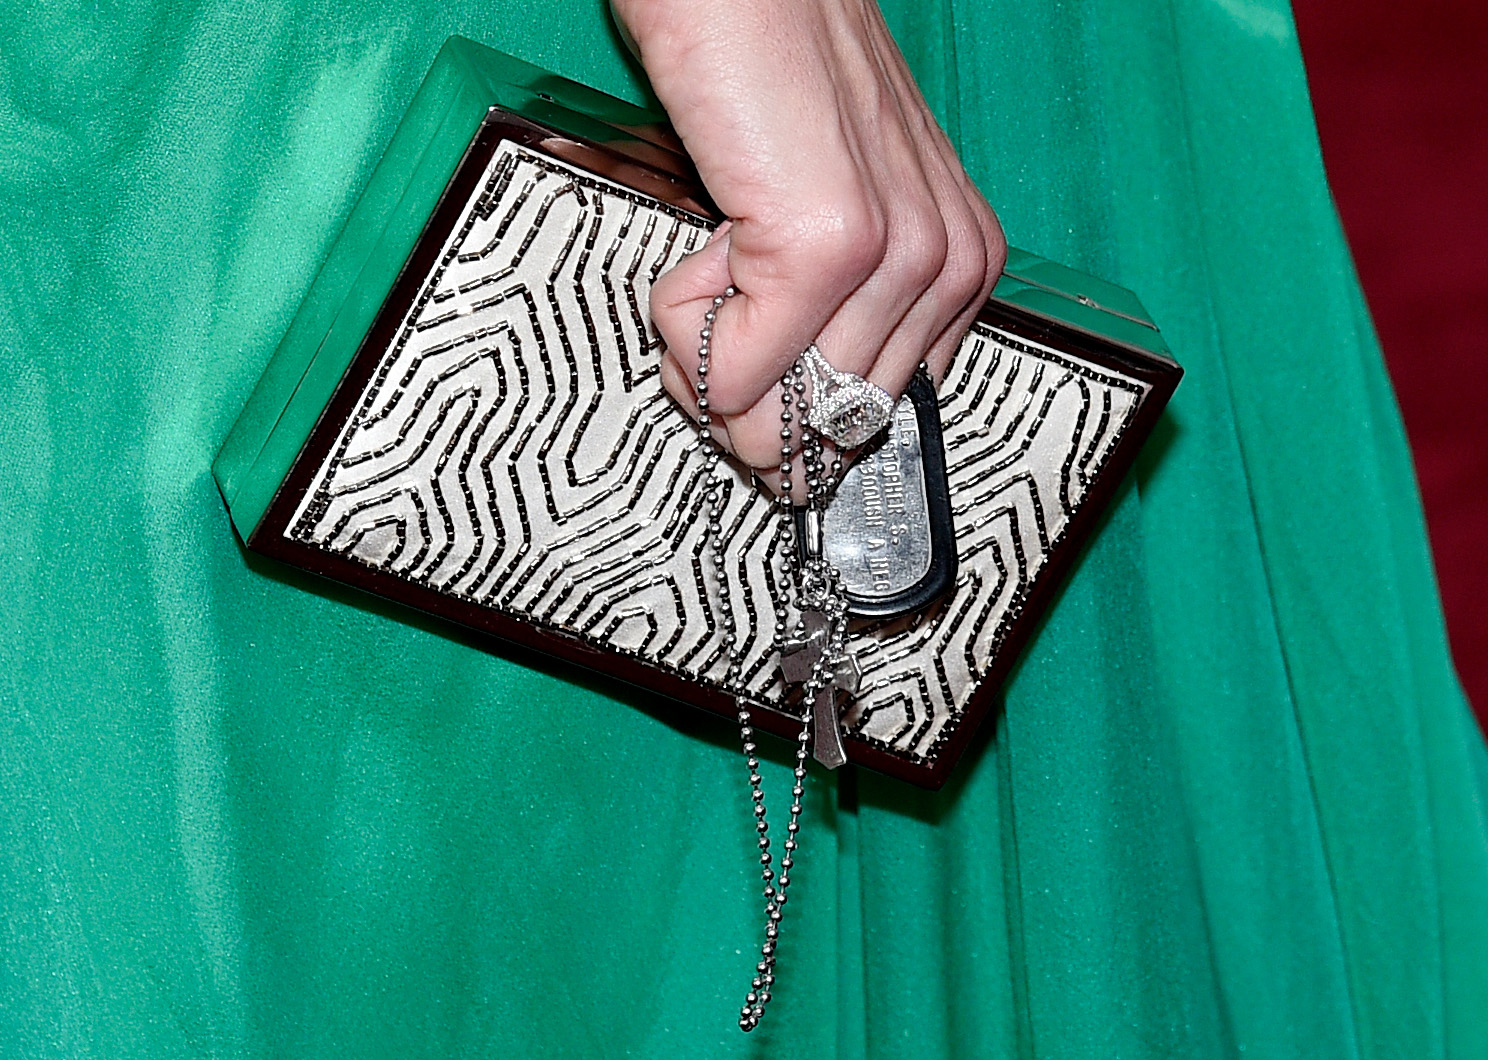 HOLLYWOOD, CA - FEBRUARY 22: A detailed view of the purse of Taya Kyle at the 87th annual Academy Awards at Hollywood & Highland Center on Feb. 22, 2015, in Hollywood